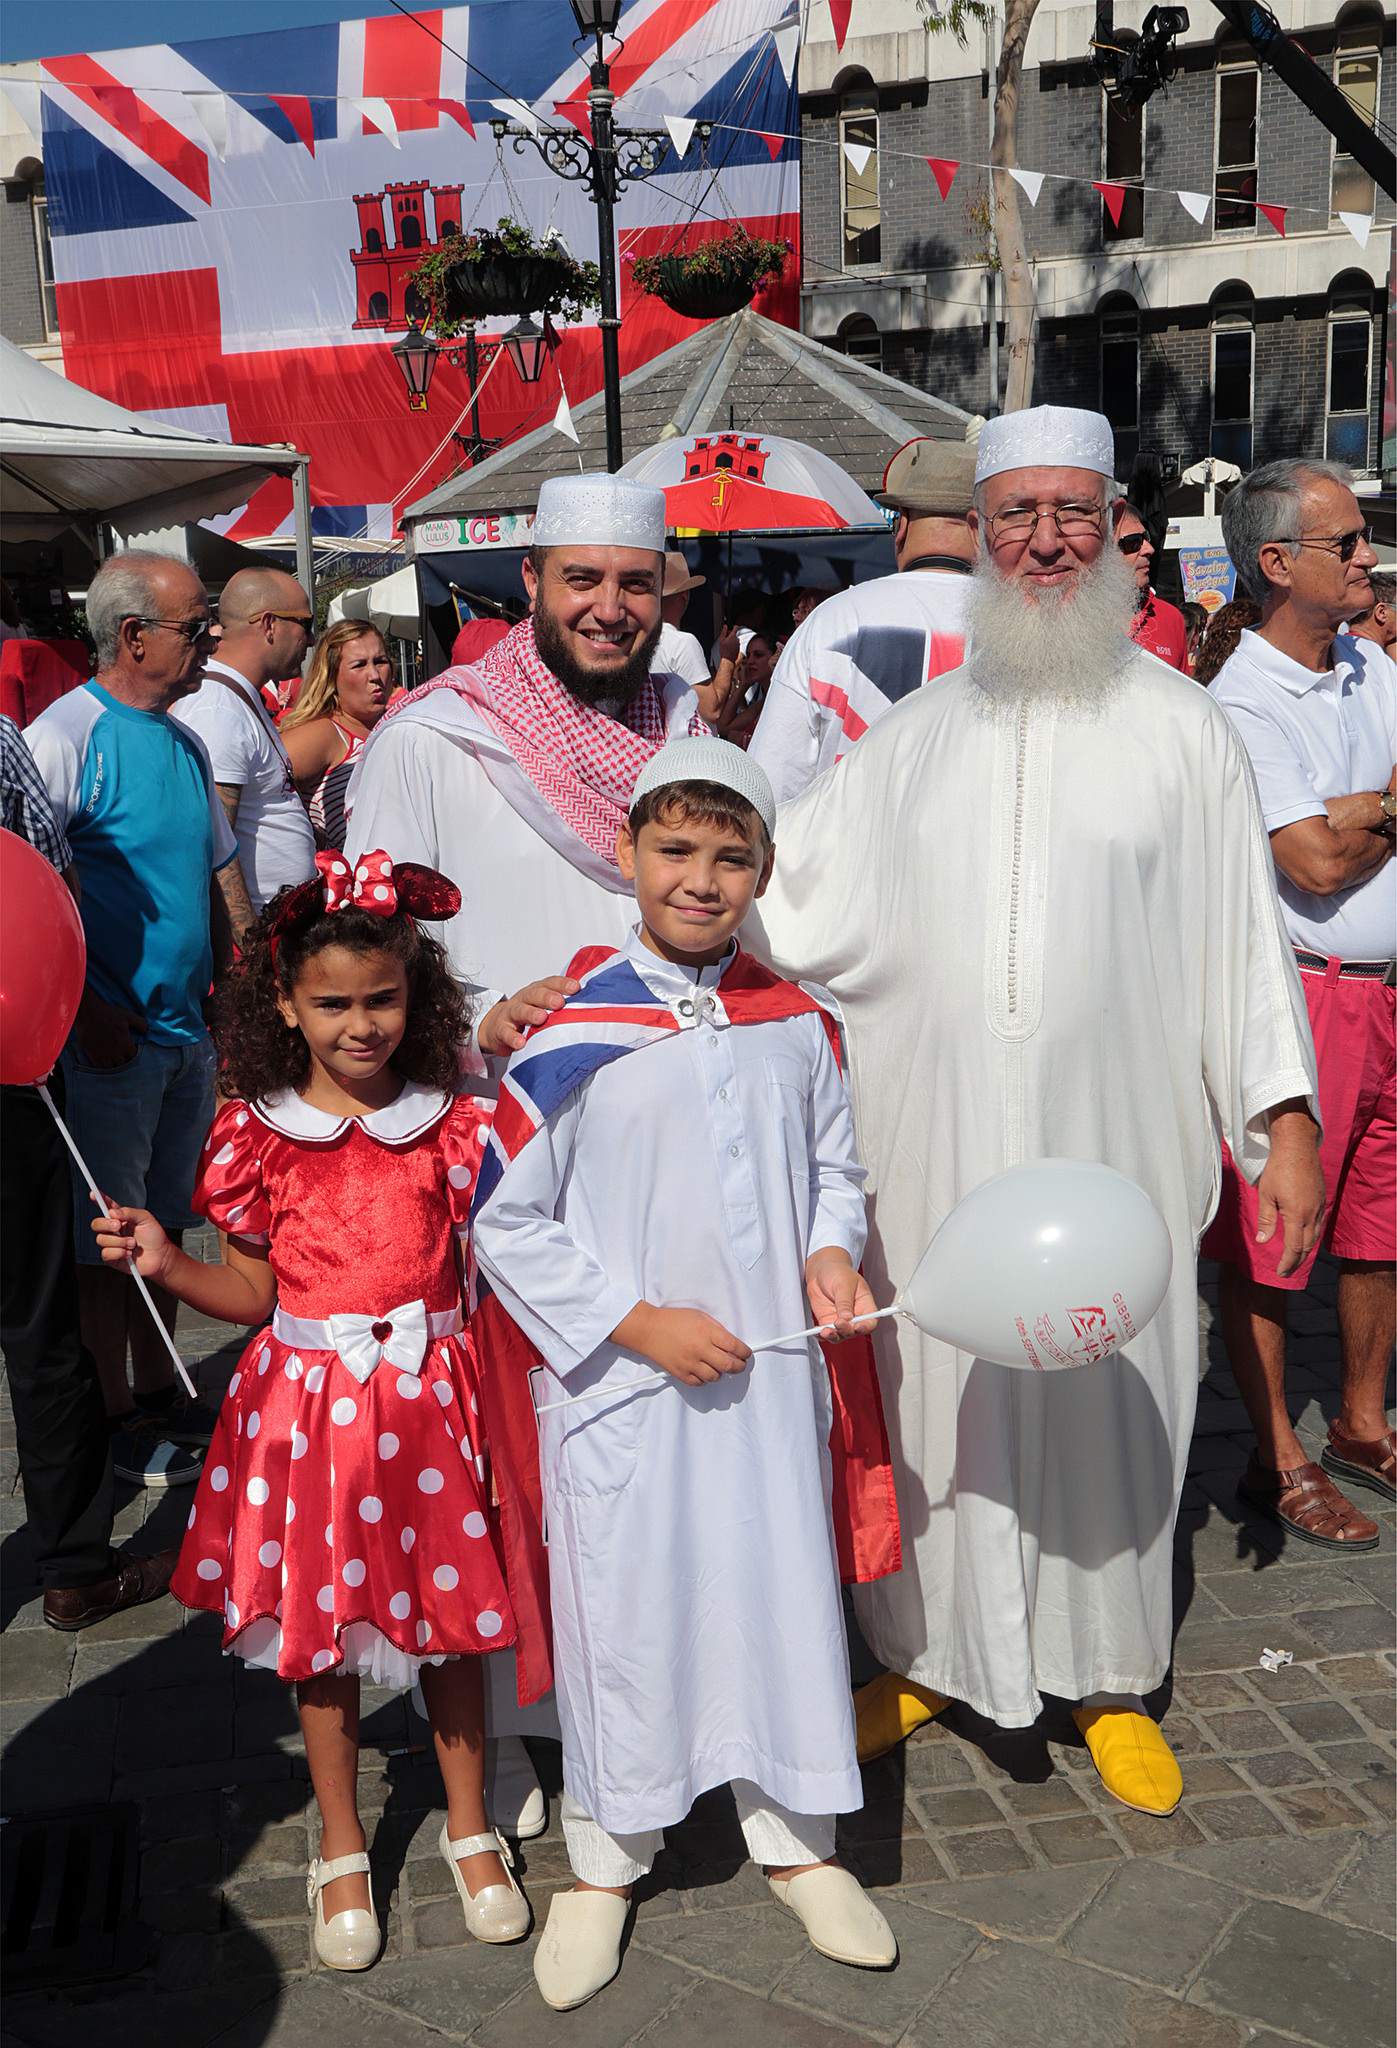 Melting pot Gibraltar is stirred by National Day